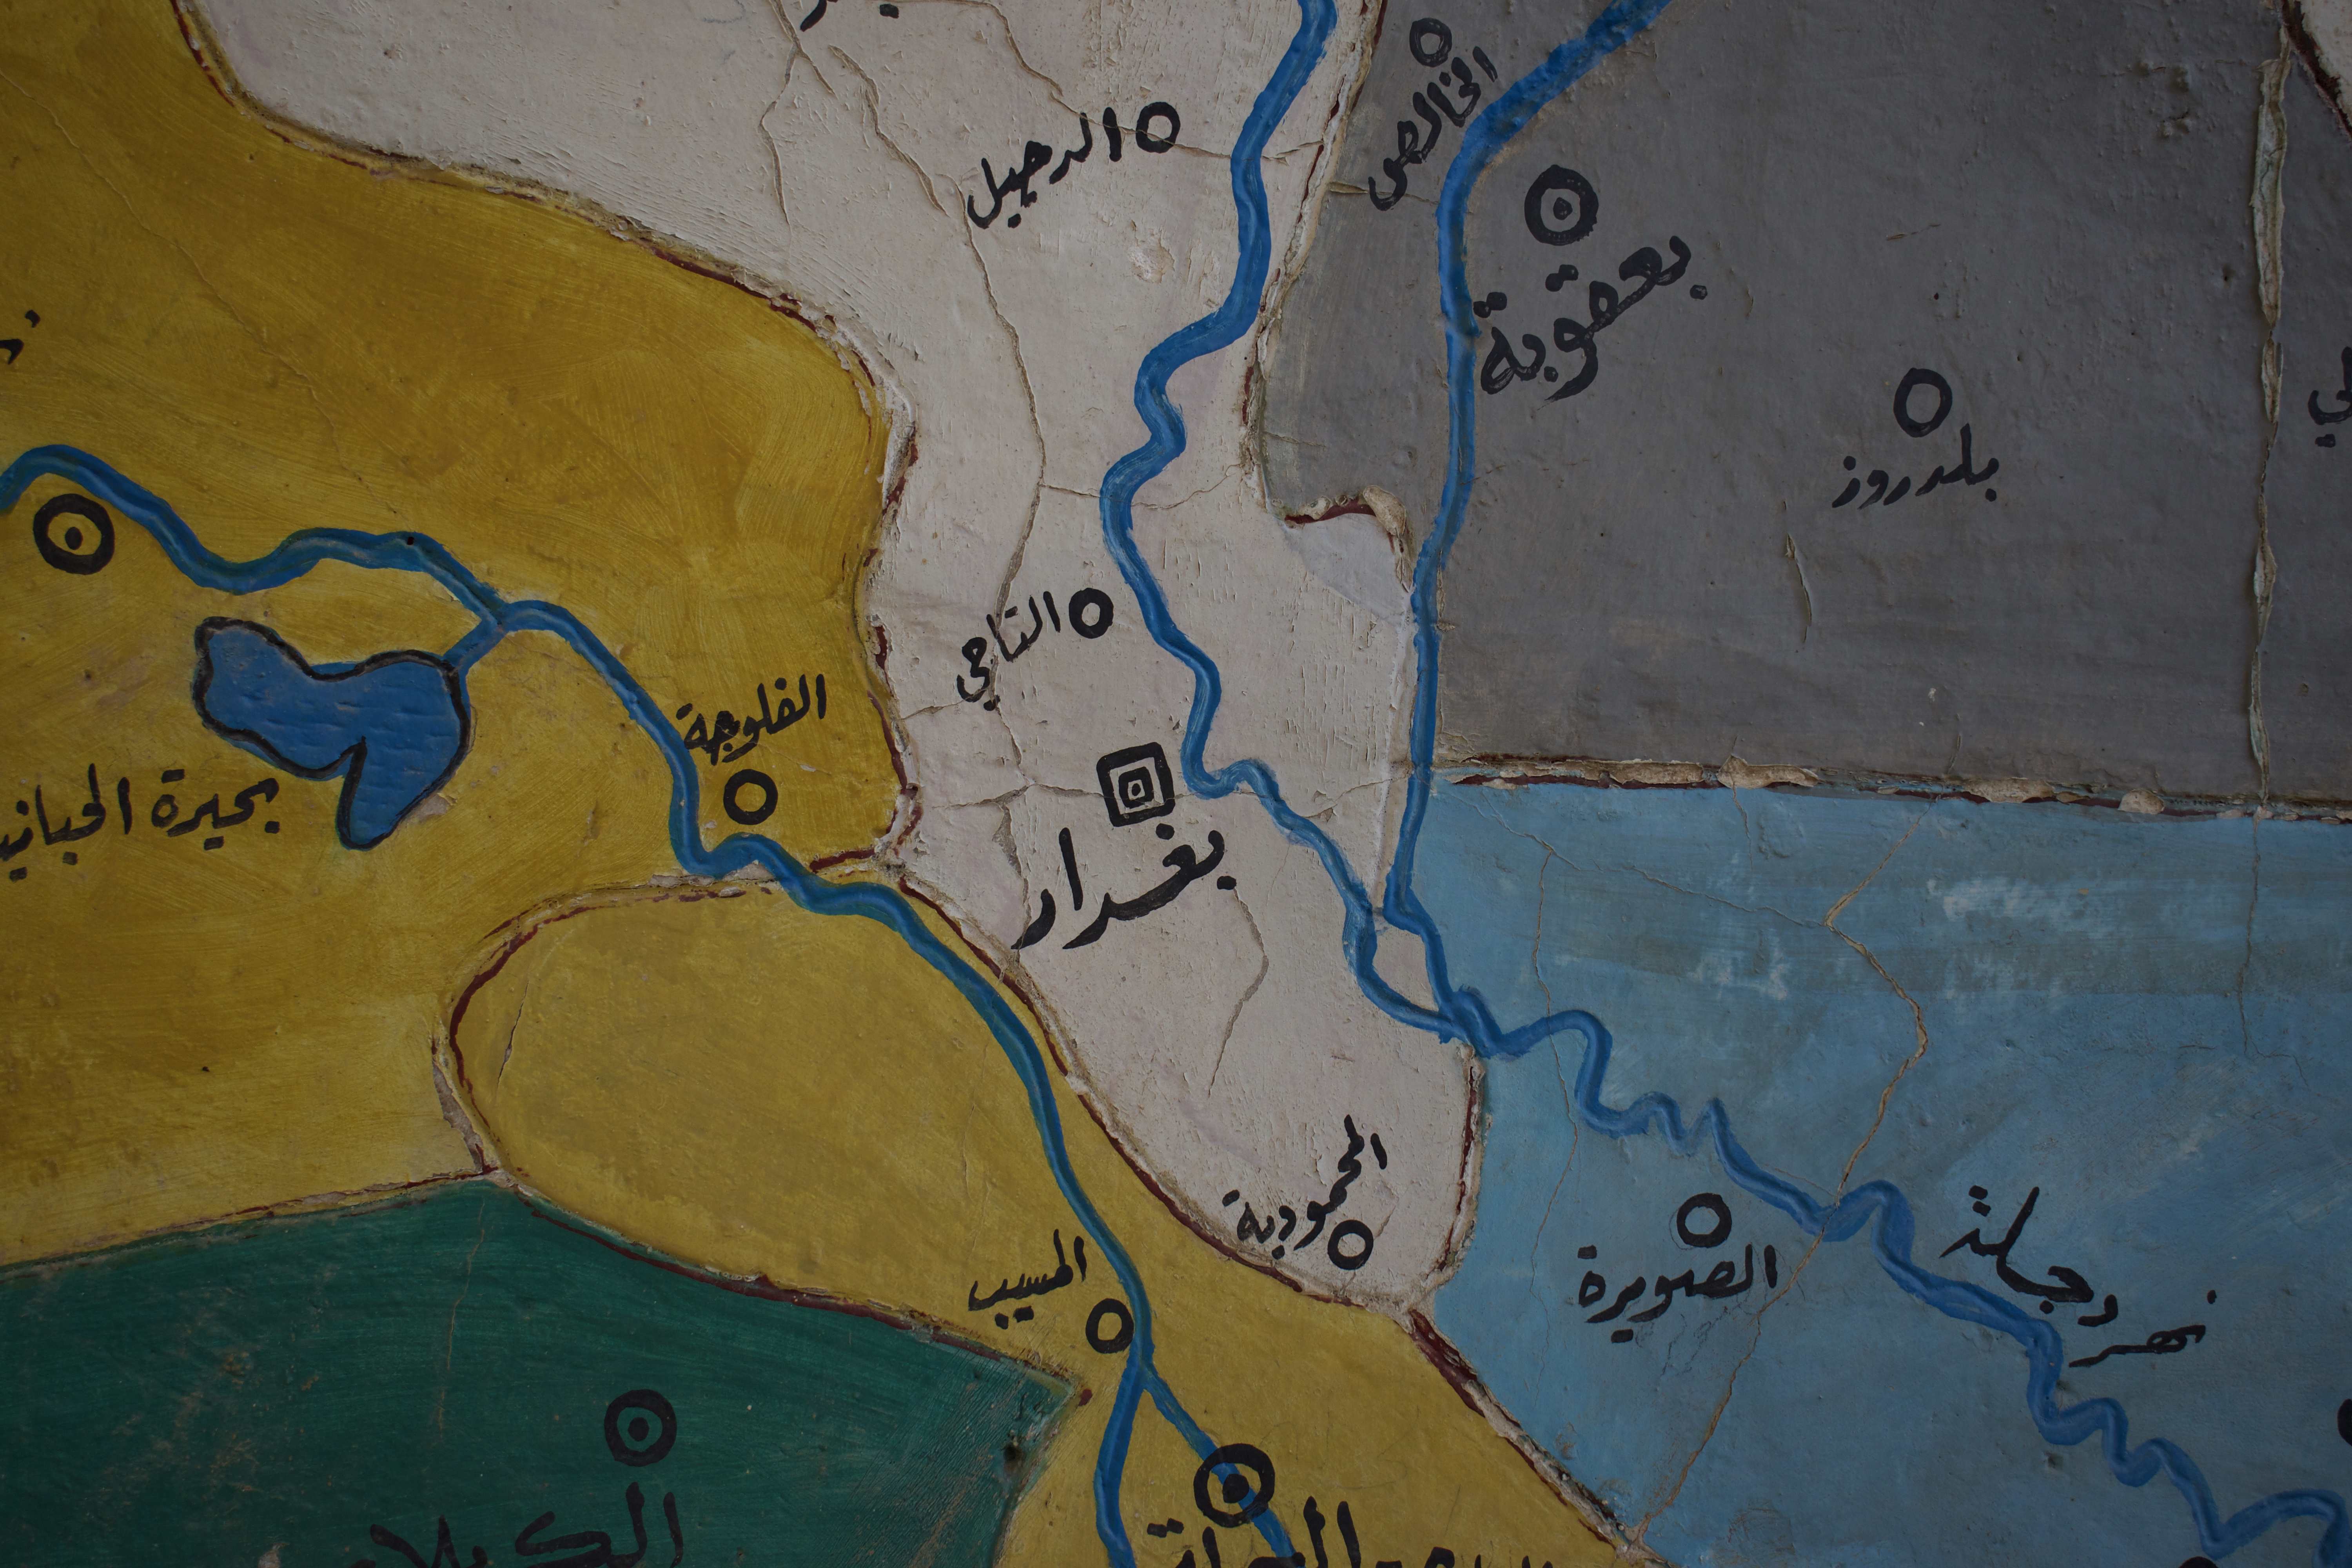 File:Views of the map of Iraq at the old church in alQosh.jpg